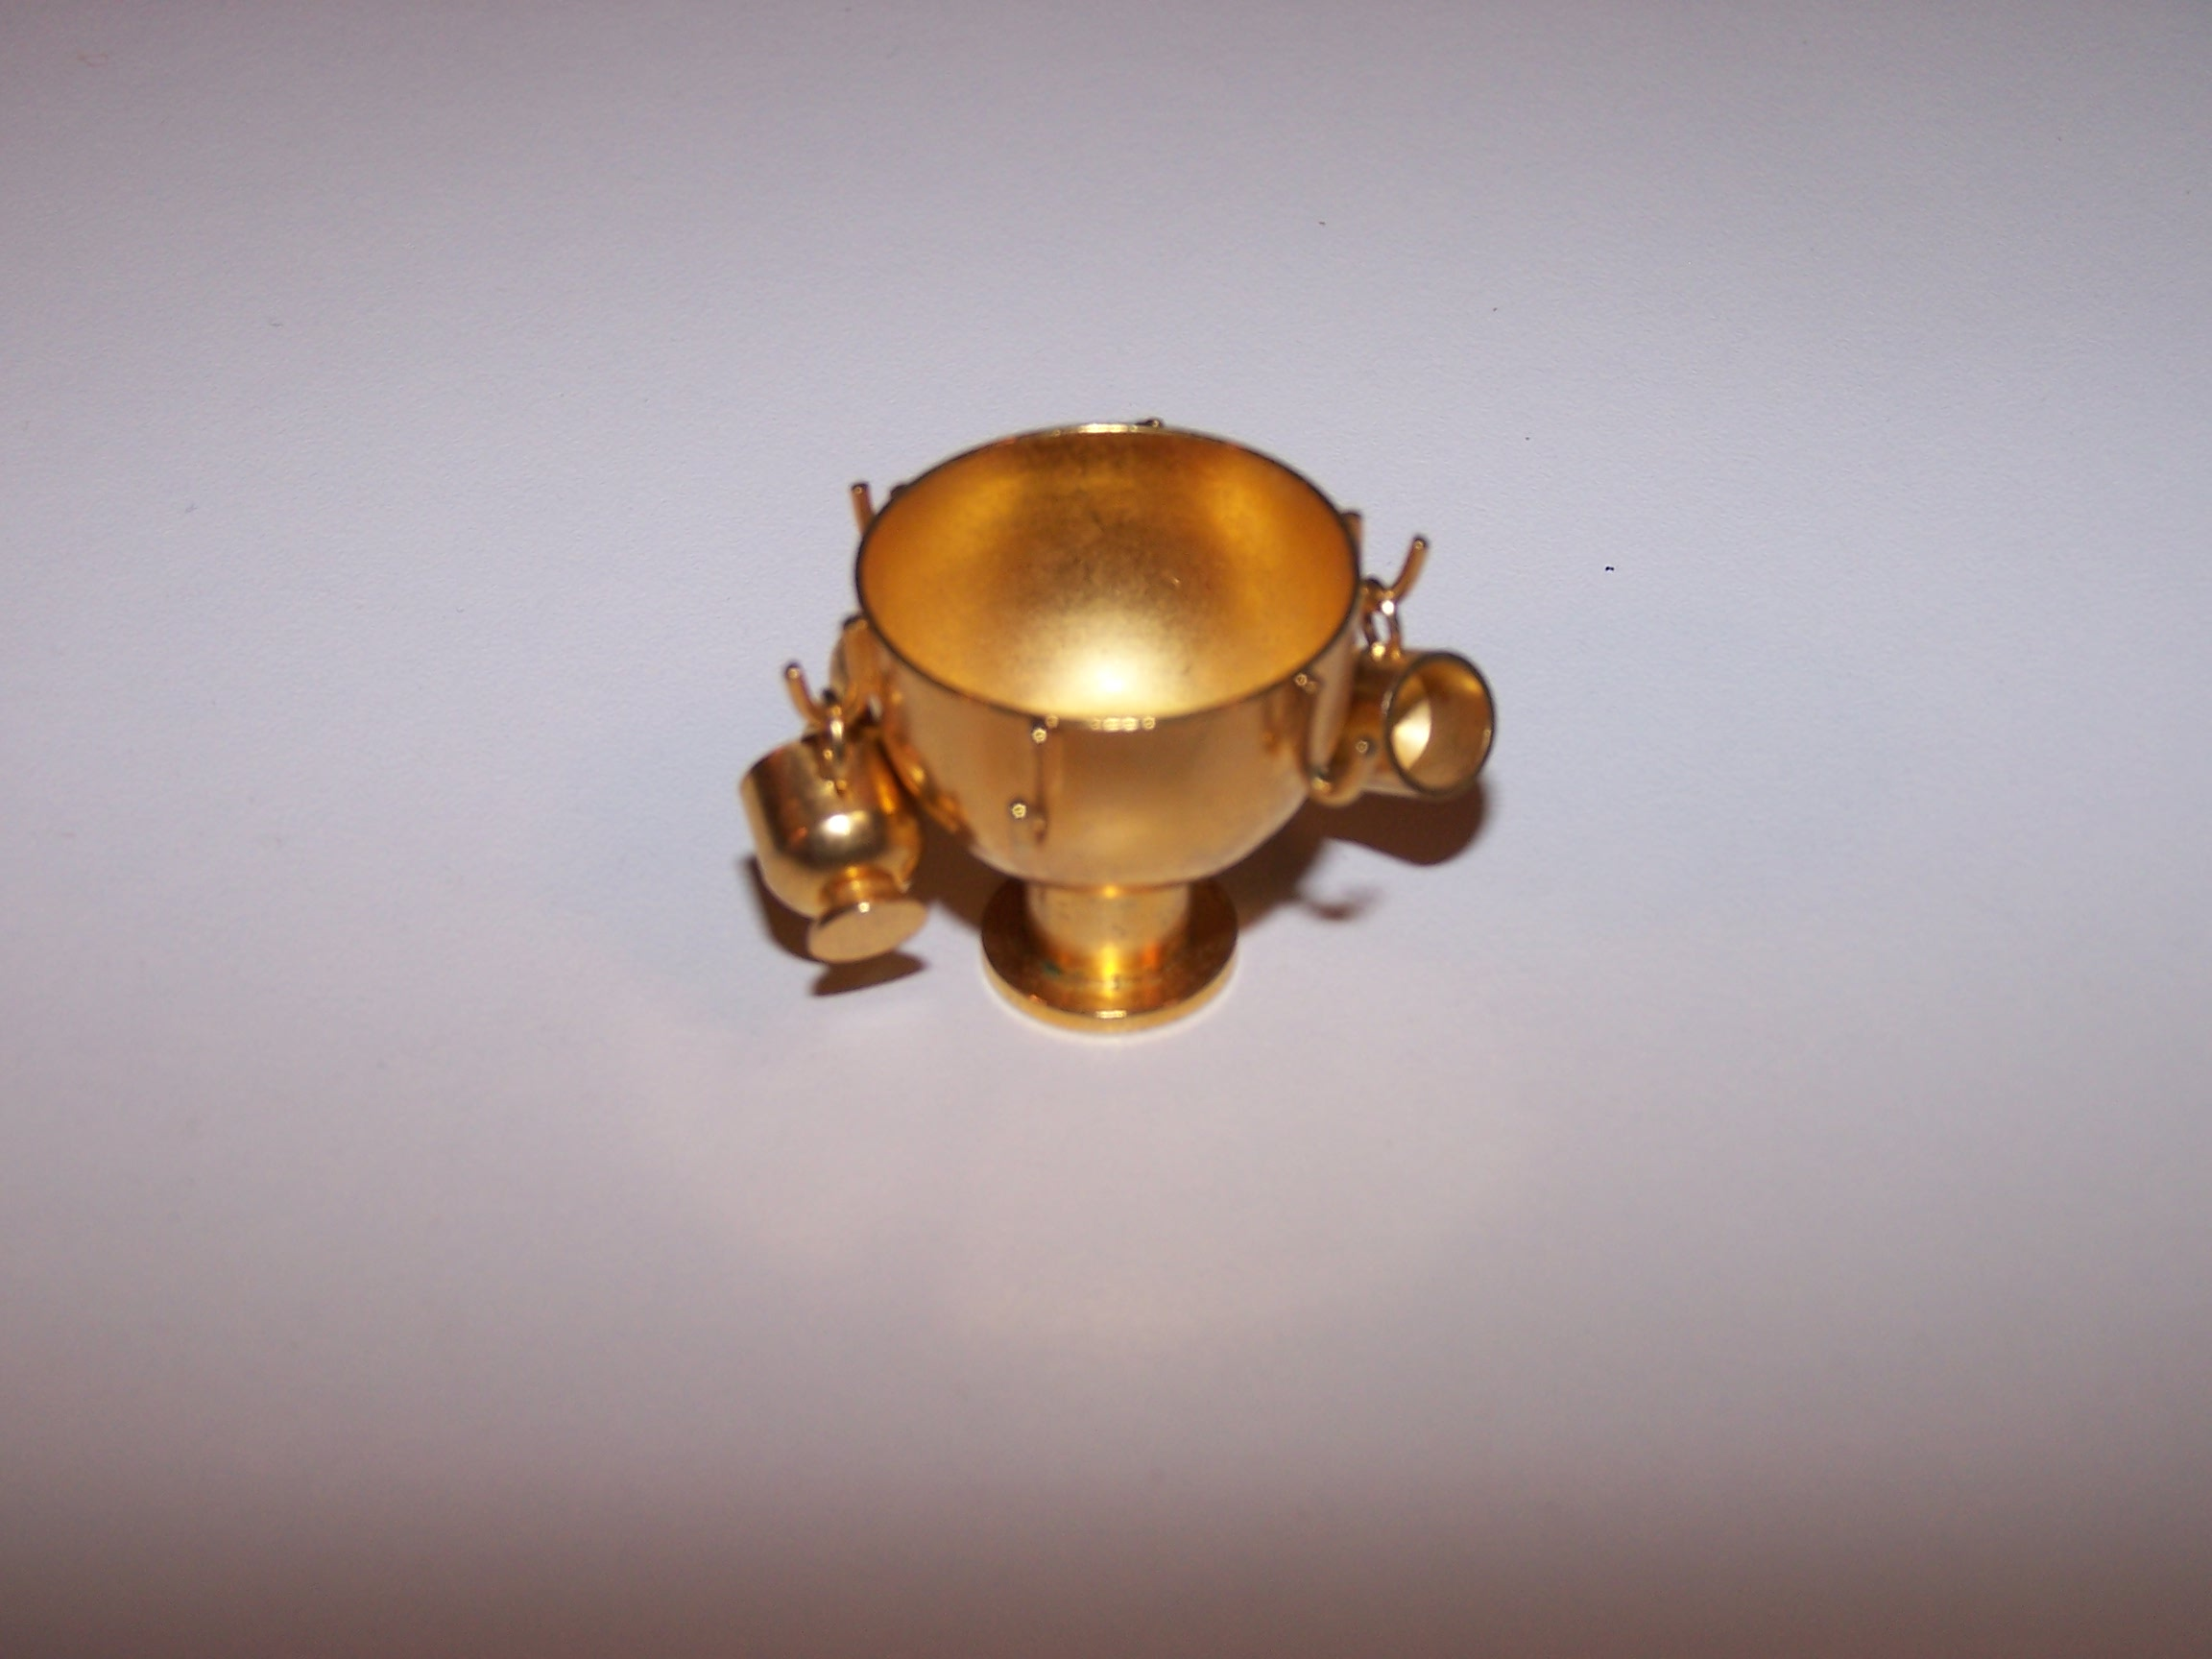 Image 3 of Dollhouse Brass Punch Bowl w Cups, Miniature